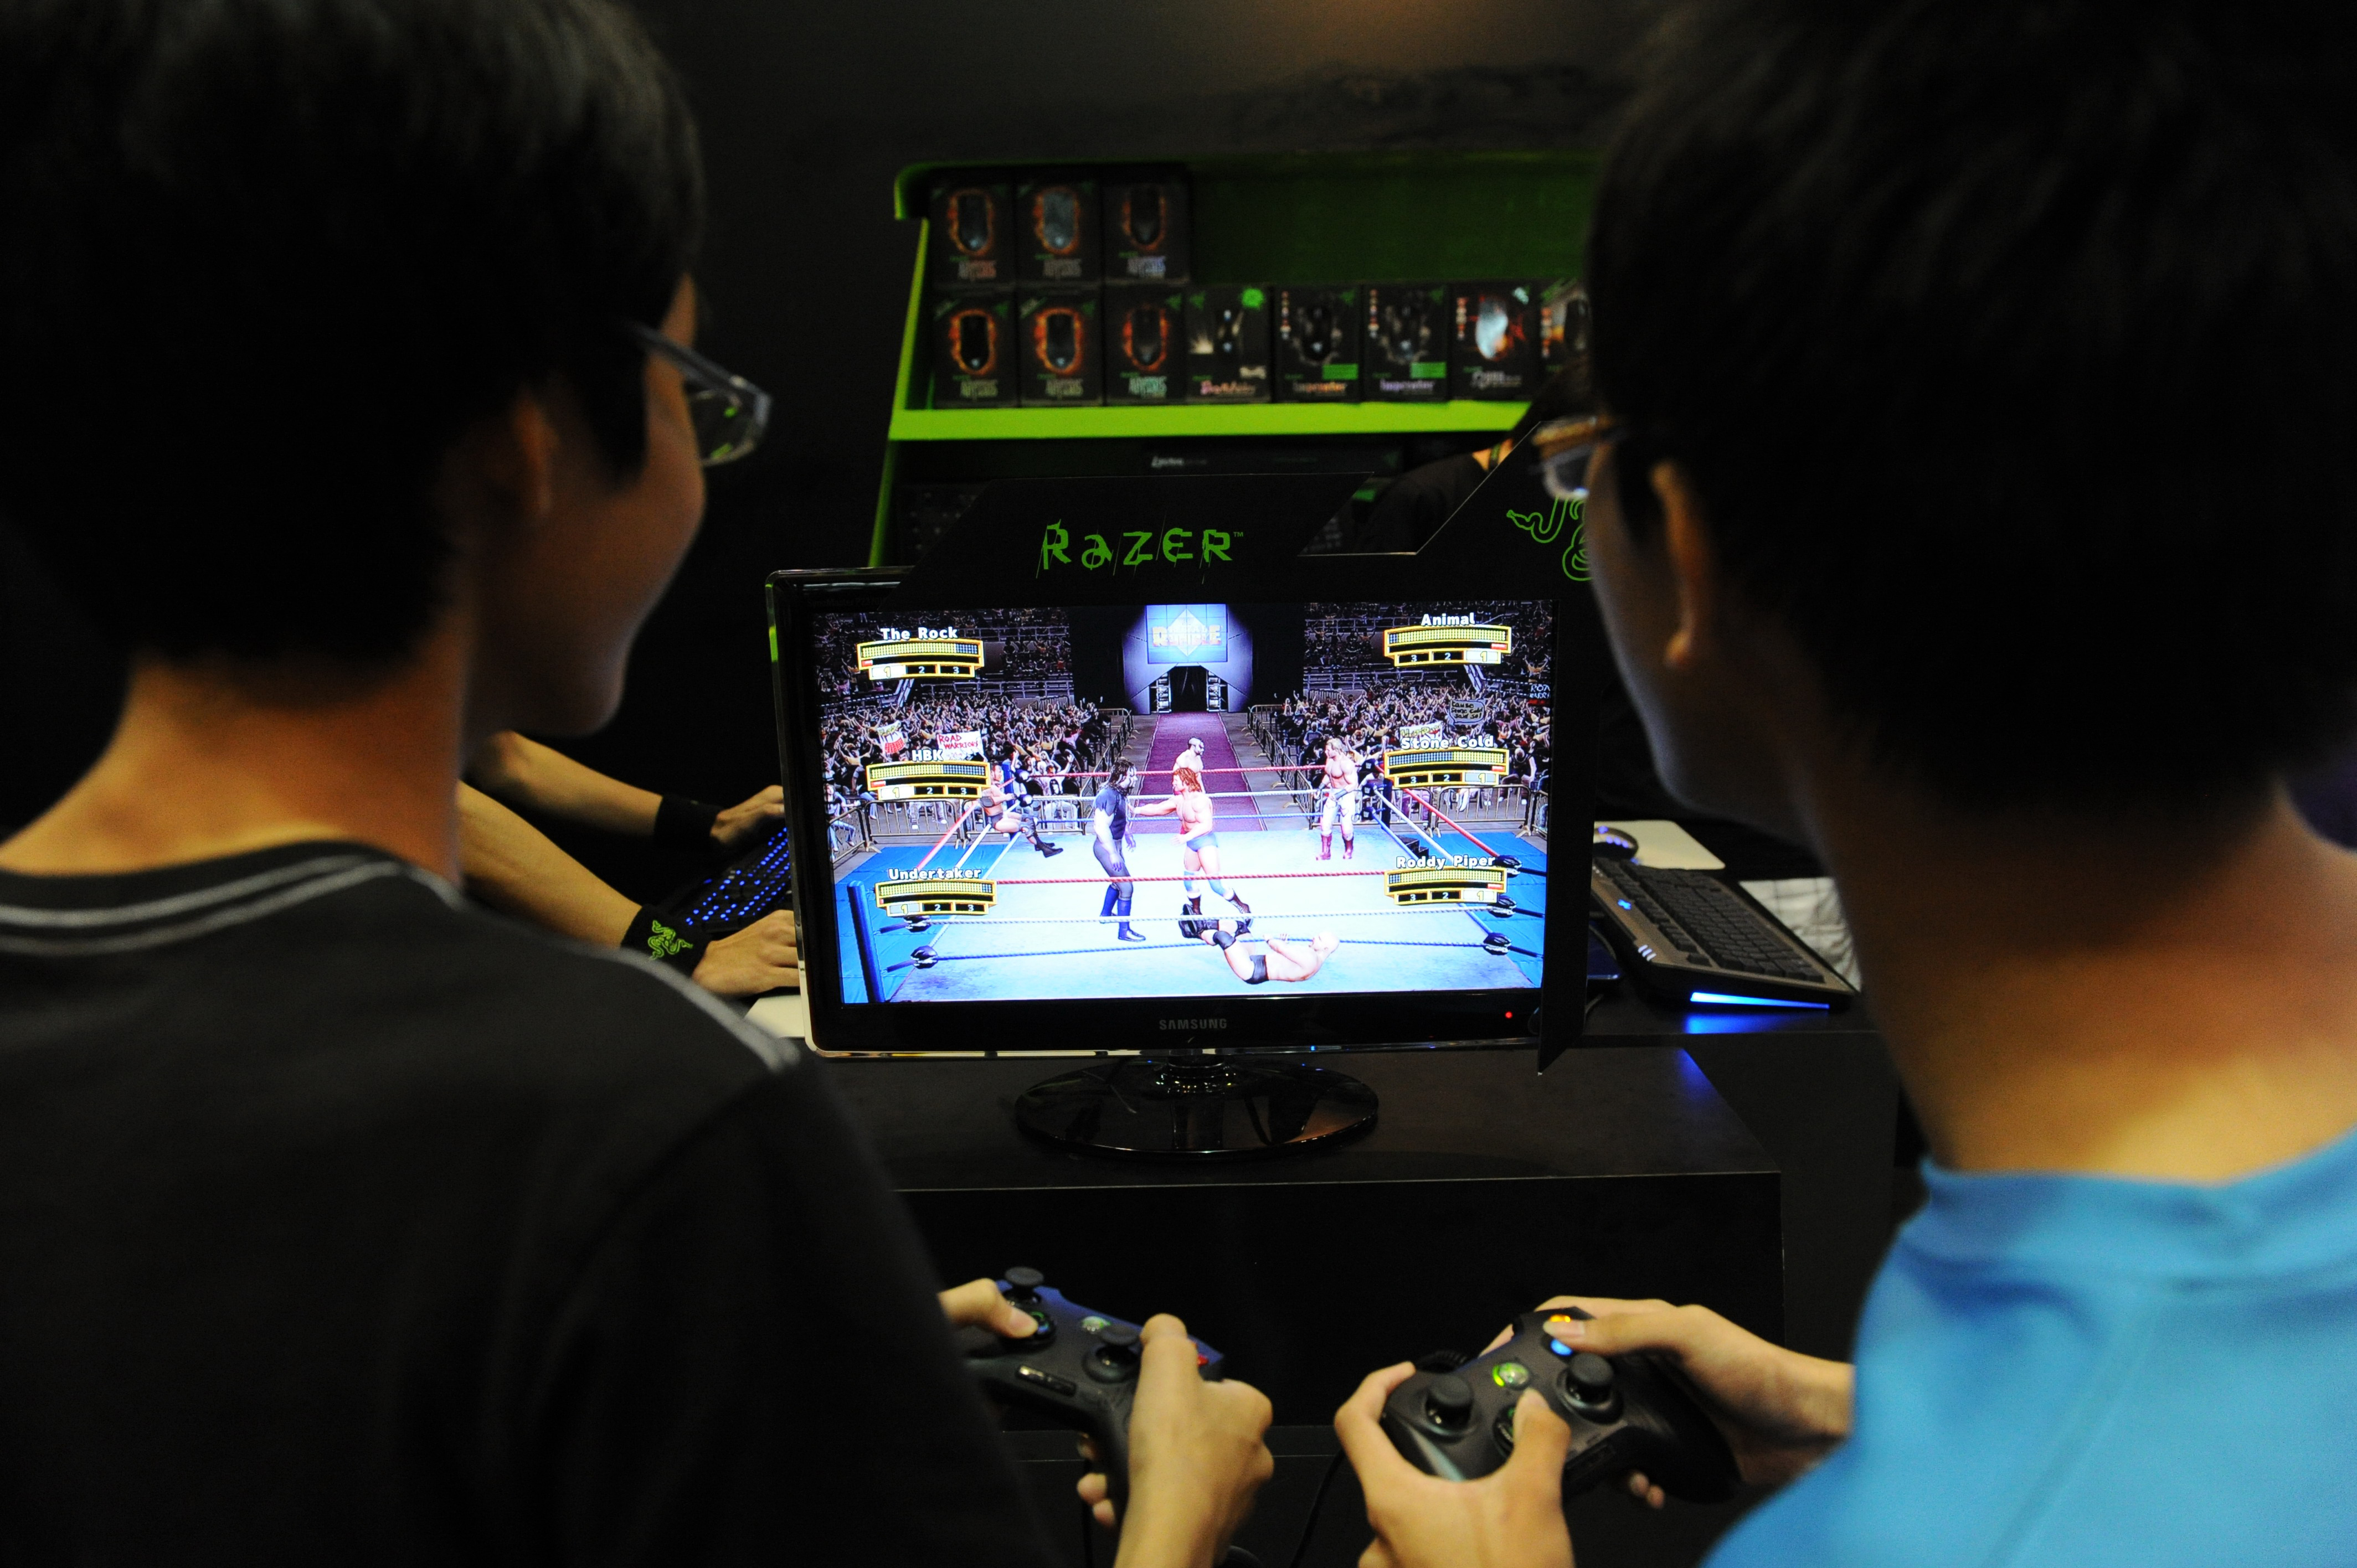 This photo taken on March 11, 2011 shows two boys slugging it out in an Xbox 360 wrestling game at the IT Show 2011 in Singapore. (ROSLAN RAHMAN/AFP/Getty Images)